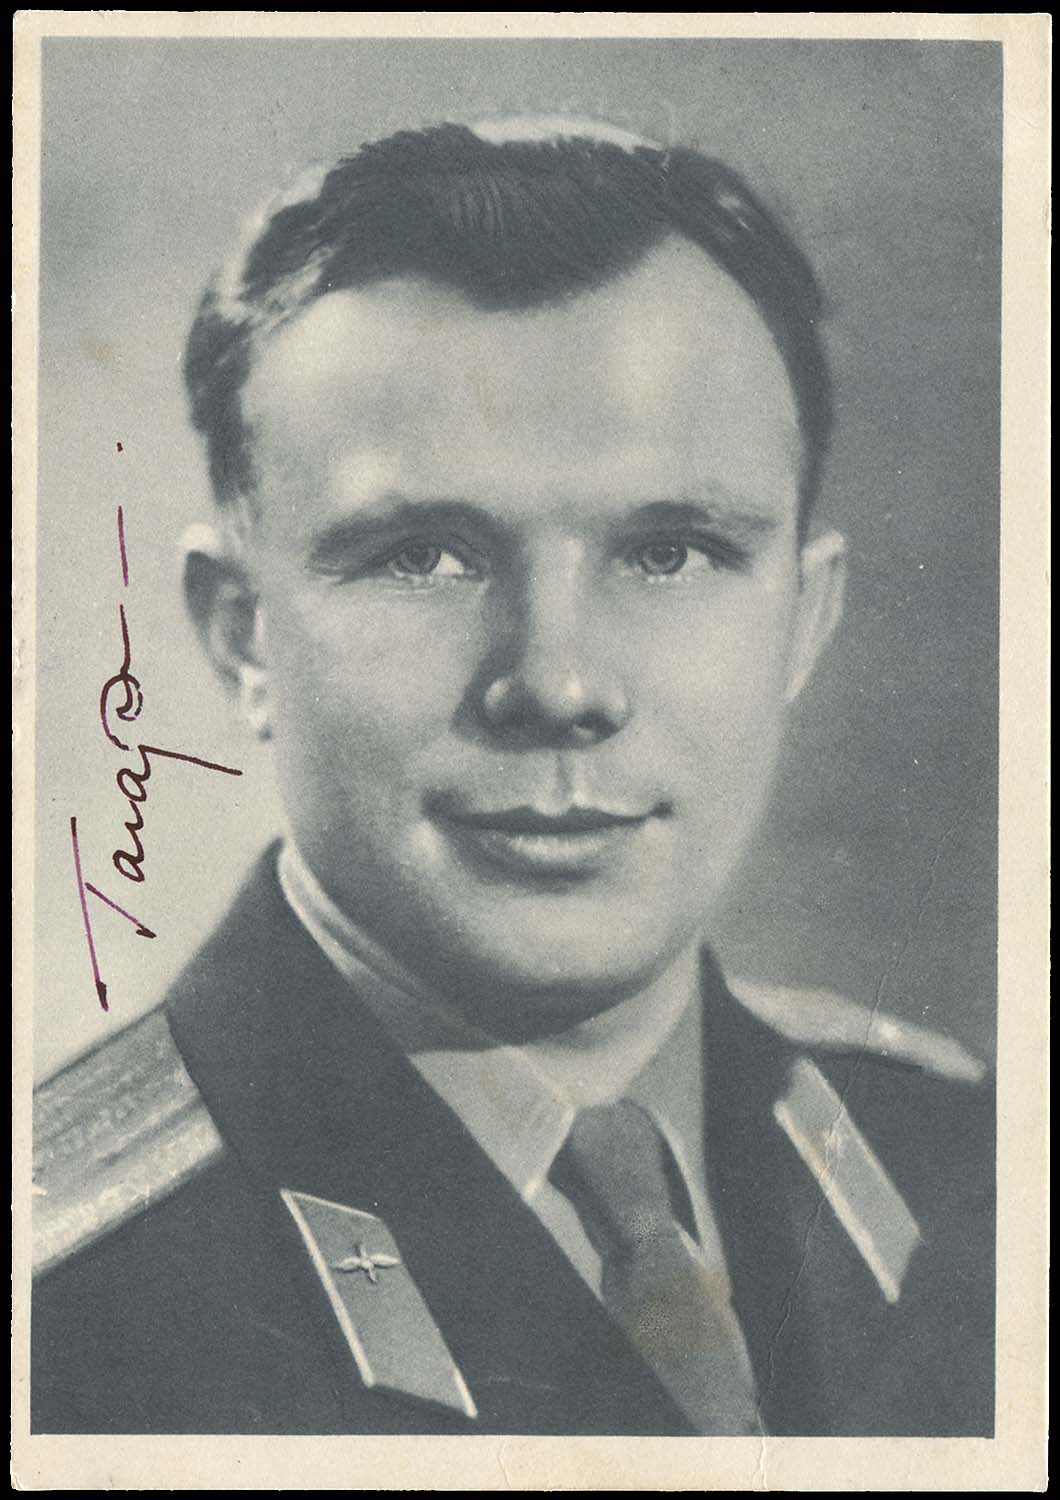 Common Mass-produced Yuri gagarin forgery style